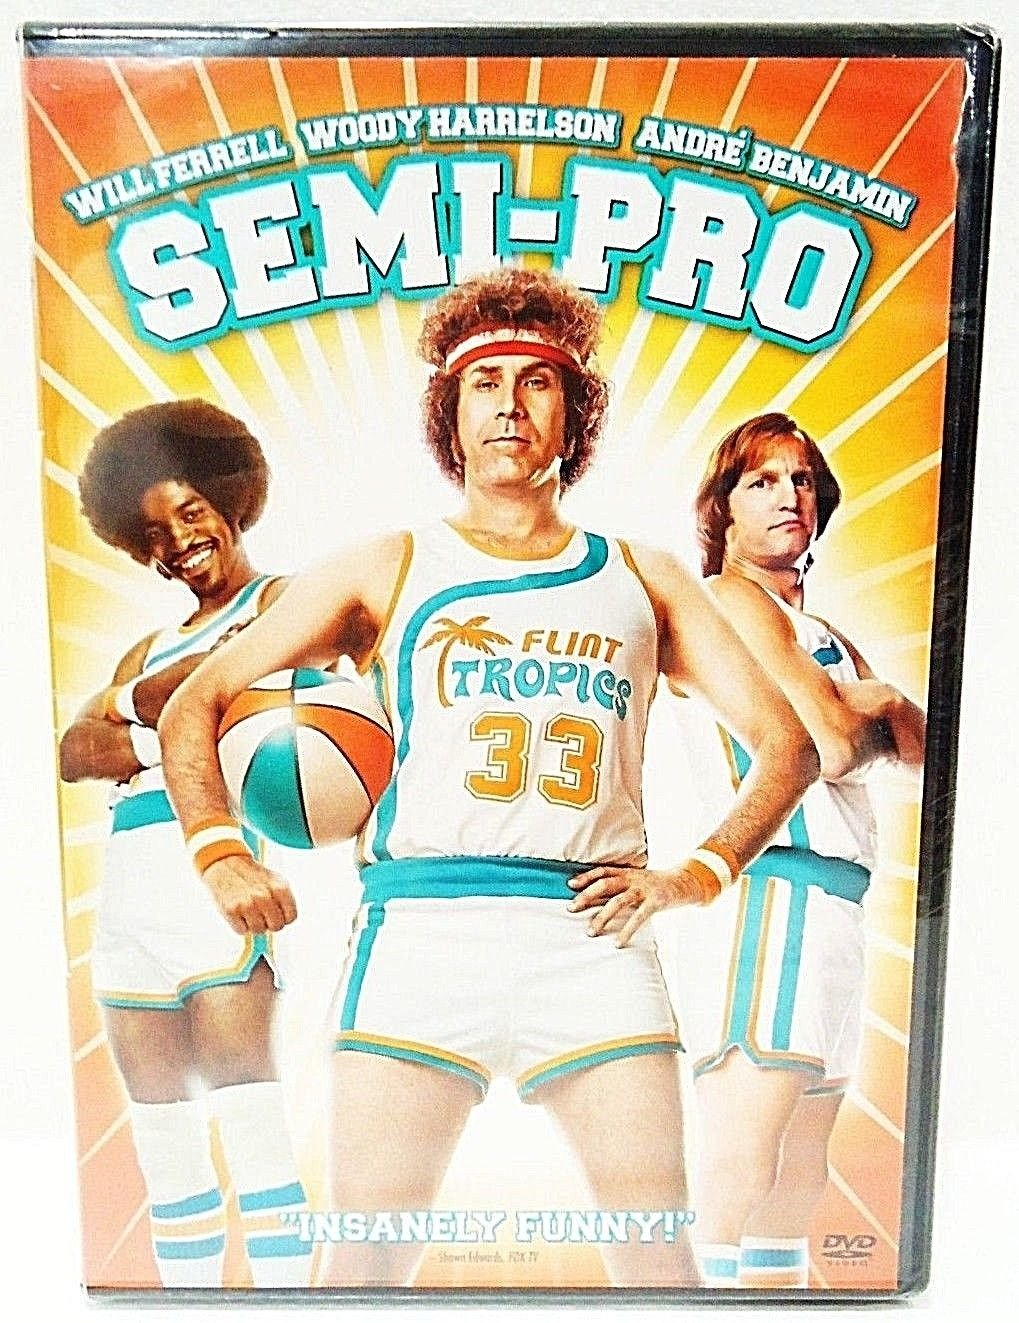 SEMI-PRO - DVD - WILL FERRWLL - NEW - SEALED - BASKETBALL - COMEDY - MOVIE - NBA